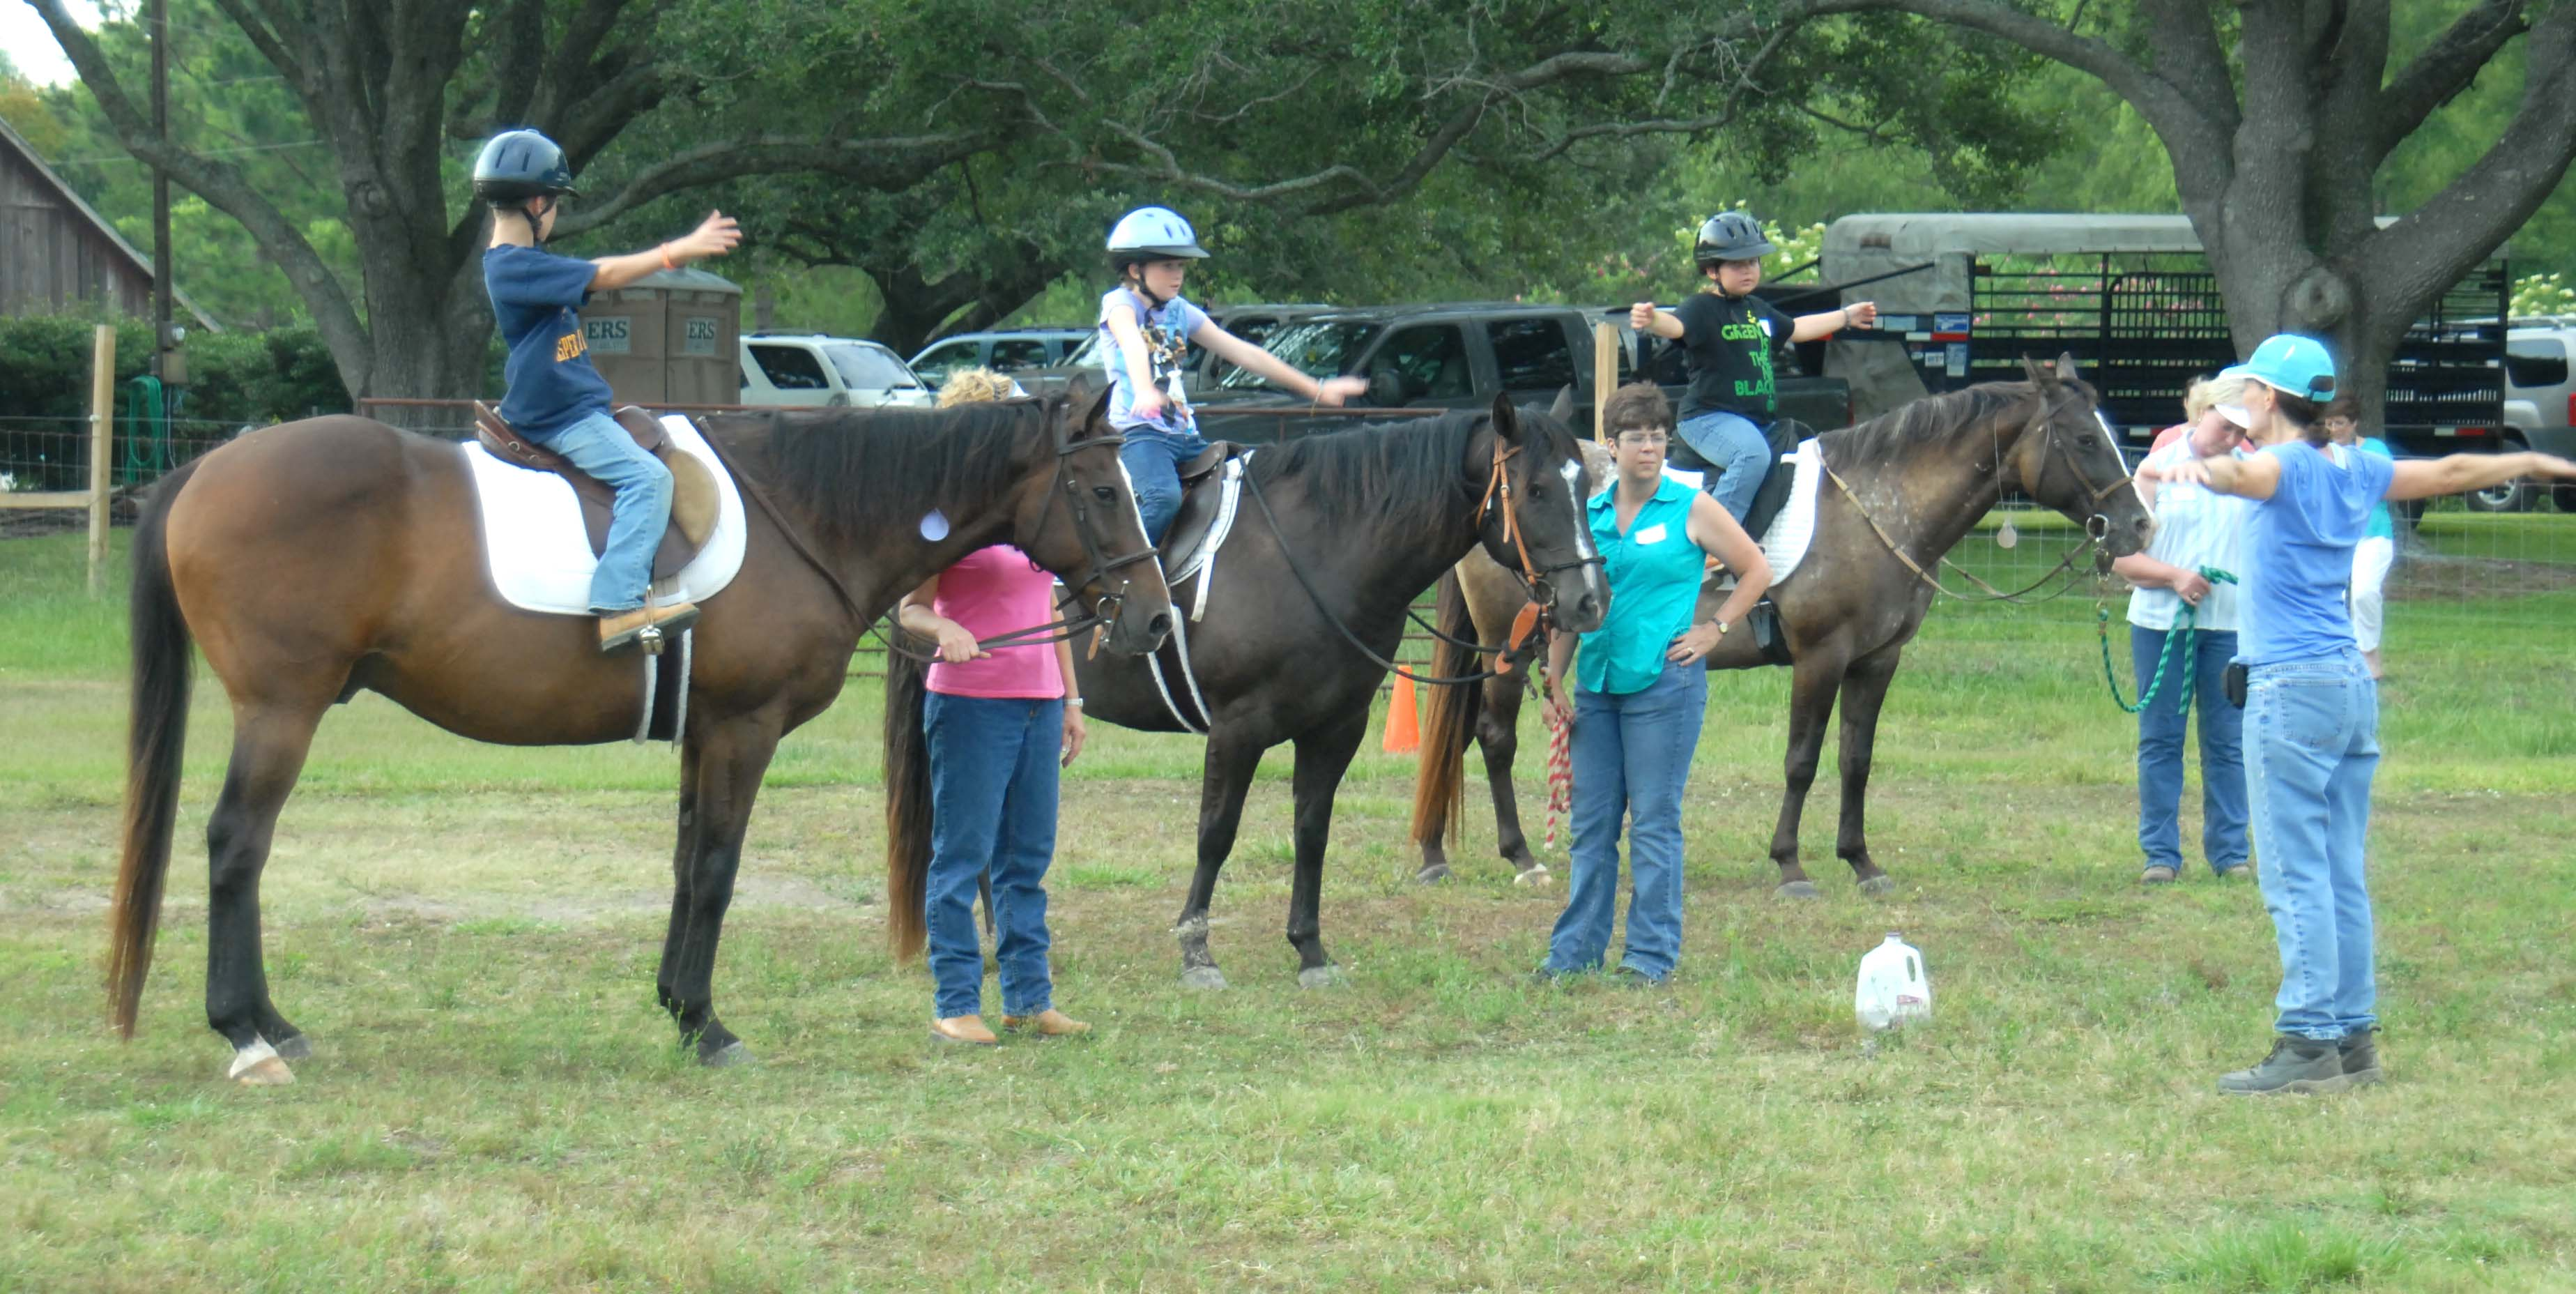 Youth learn horsemanship in 4-H class